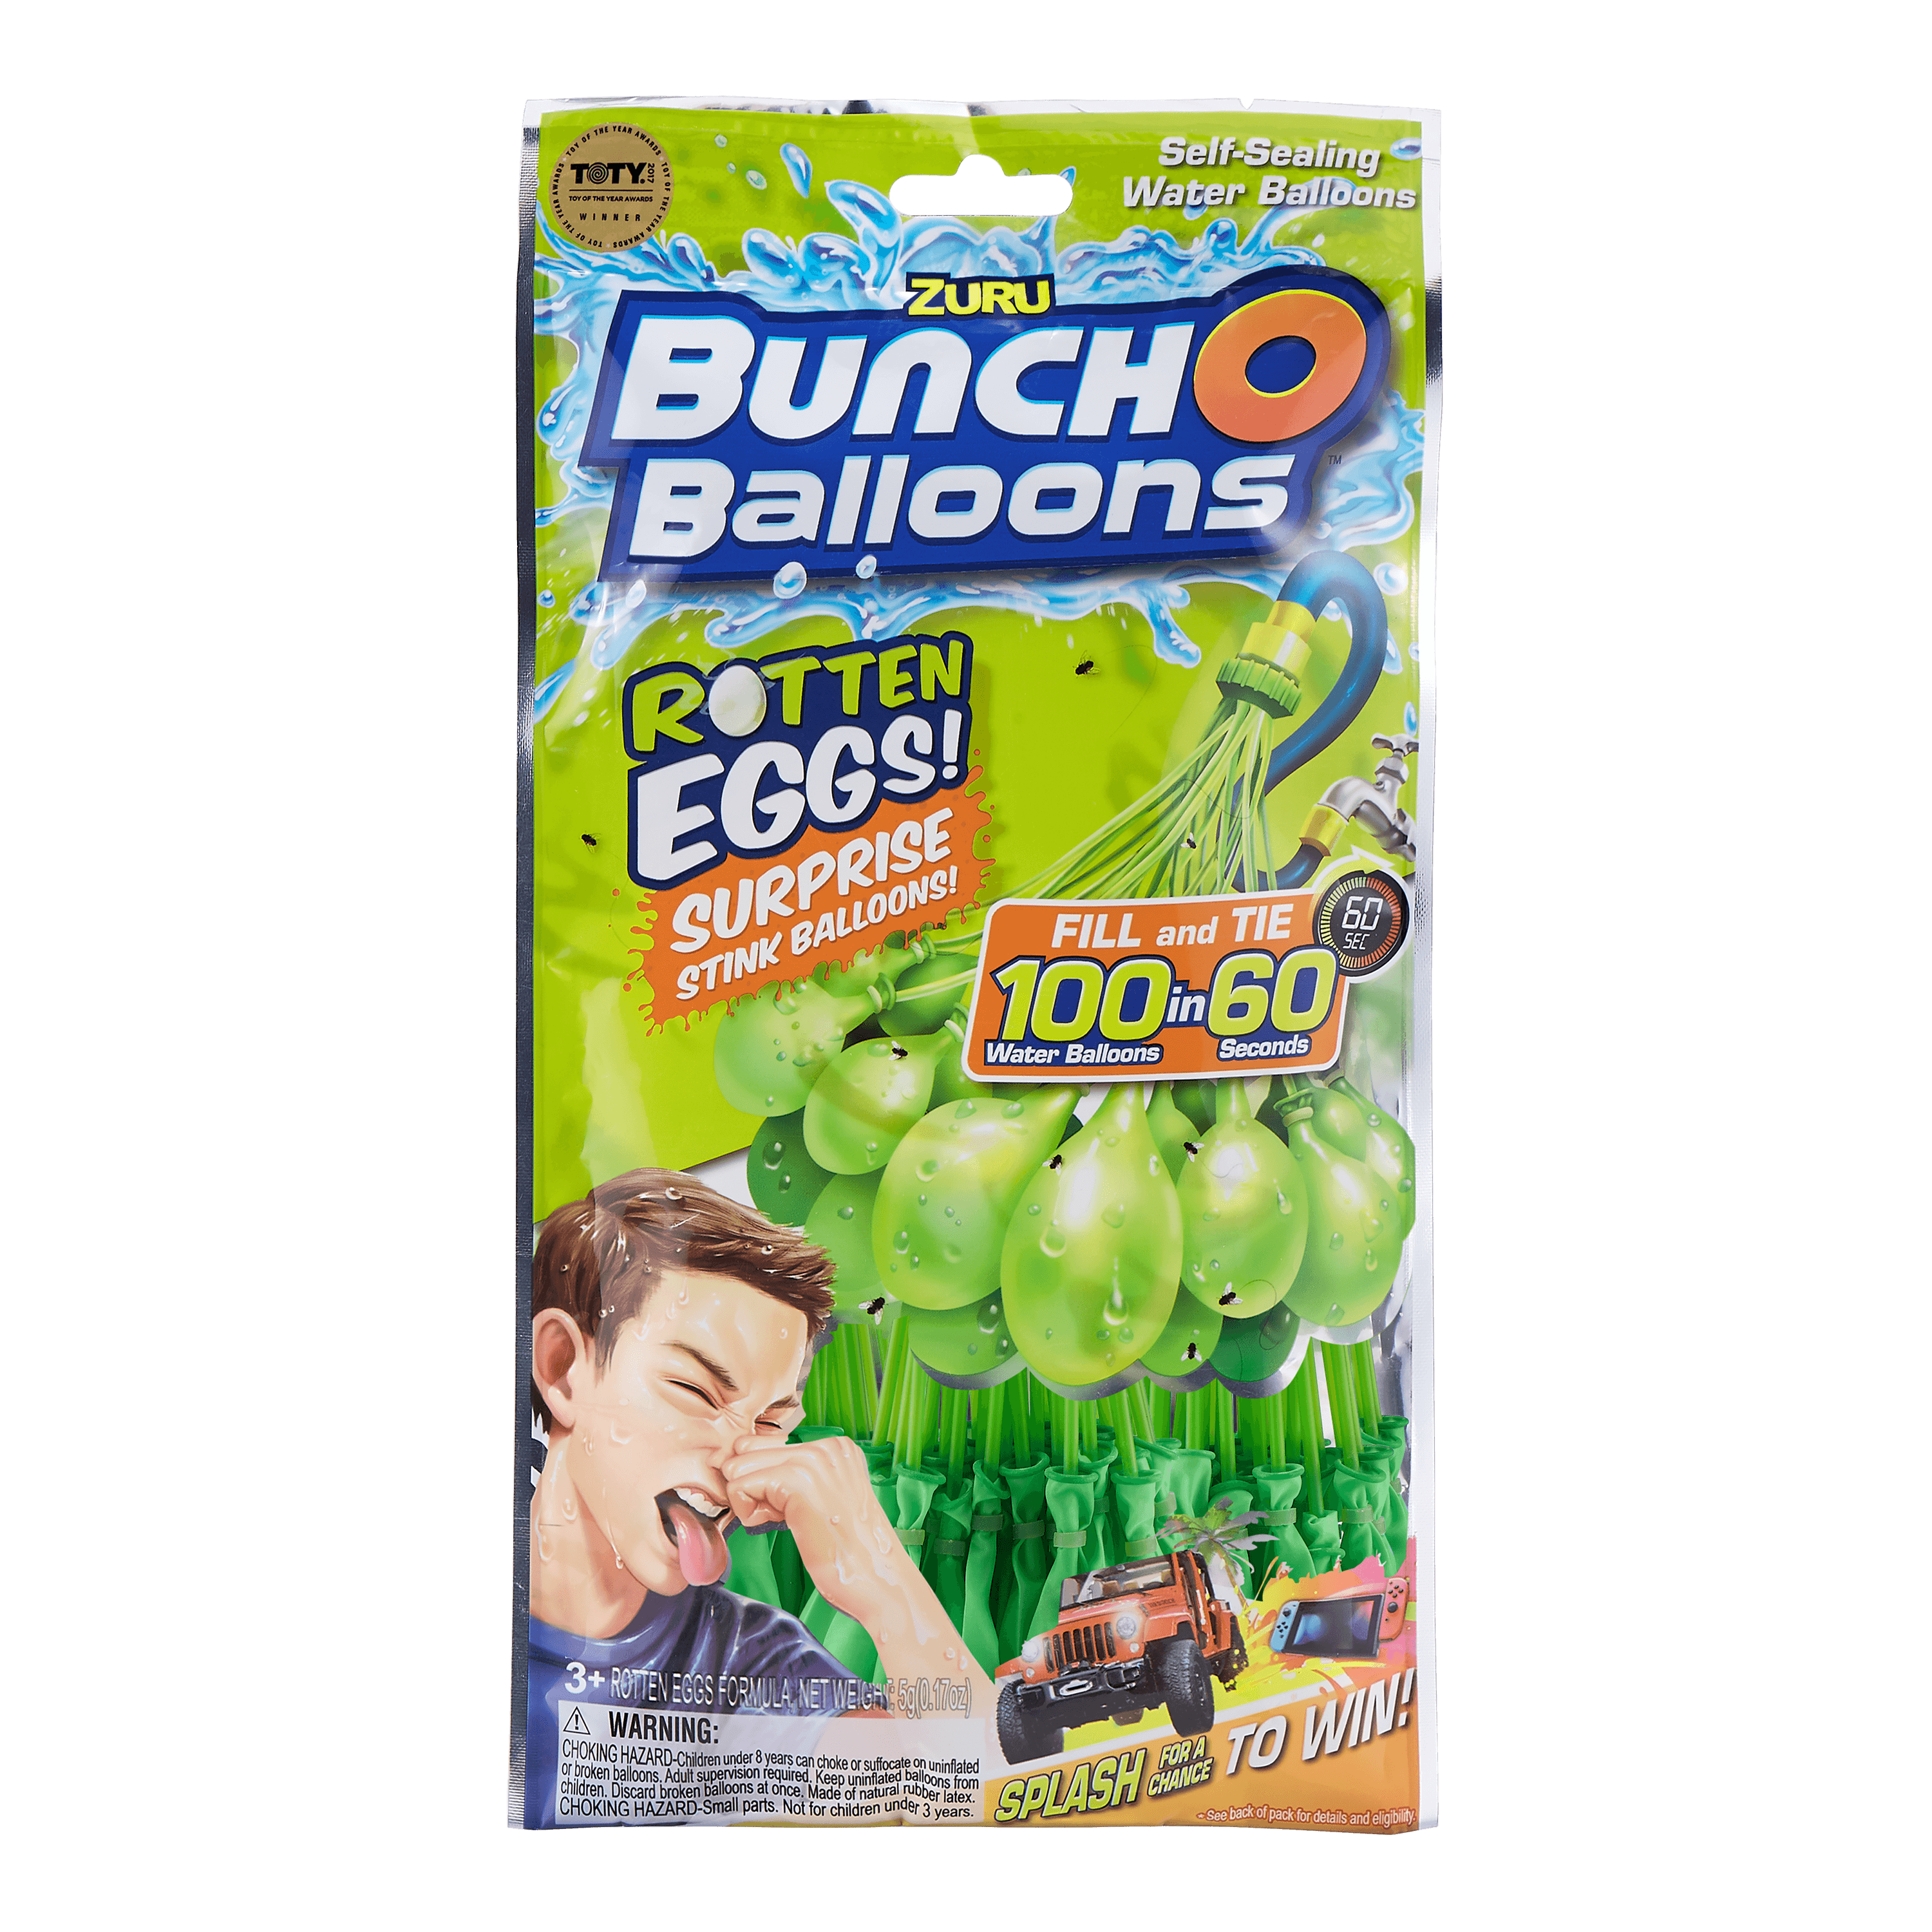 Bunch O Balloons Splash to Win Promotion Rotten Eggs with 100 Rapid-Filling Self-Sealing Water Balloons (3 Pack) by ZURU